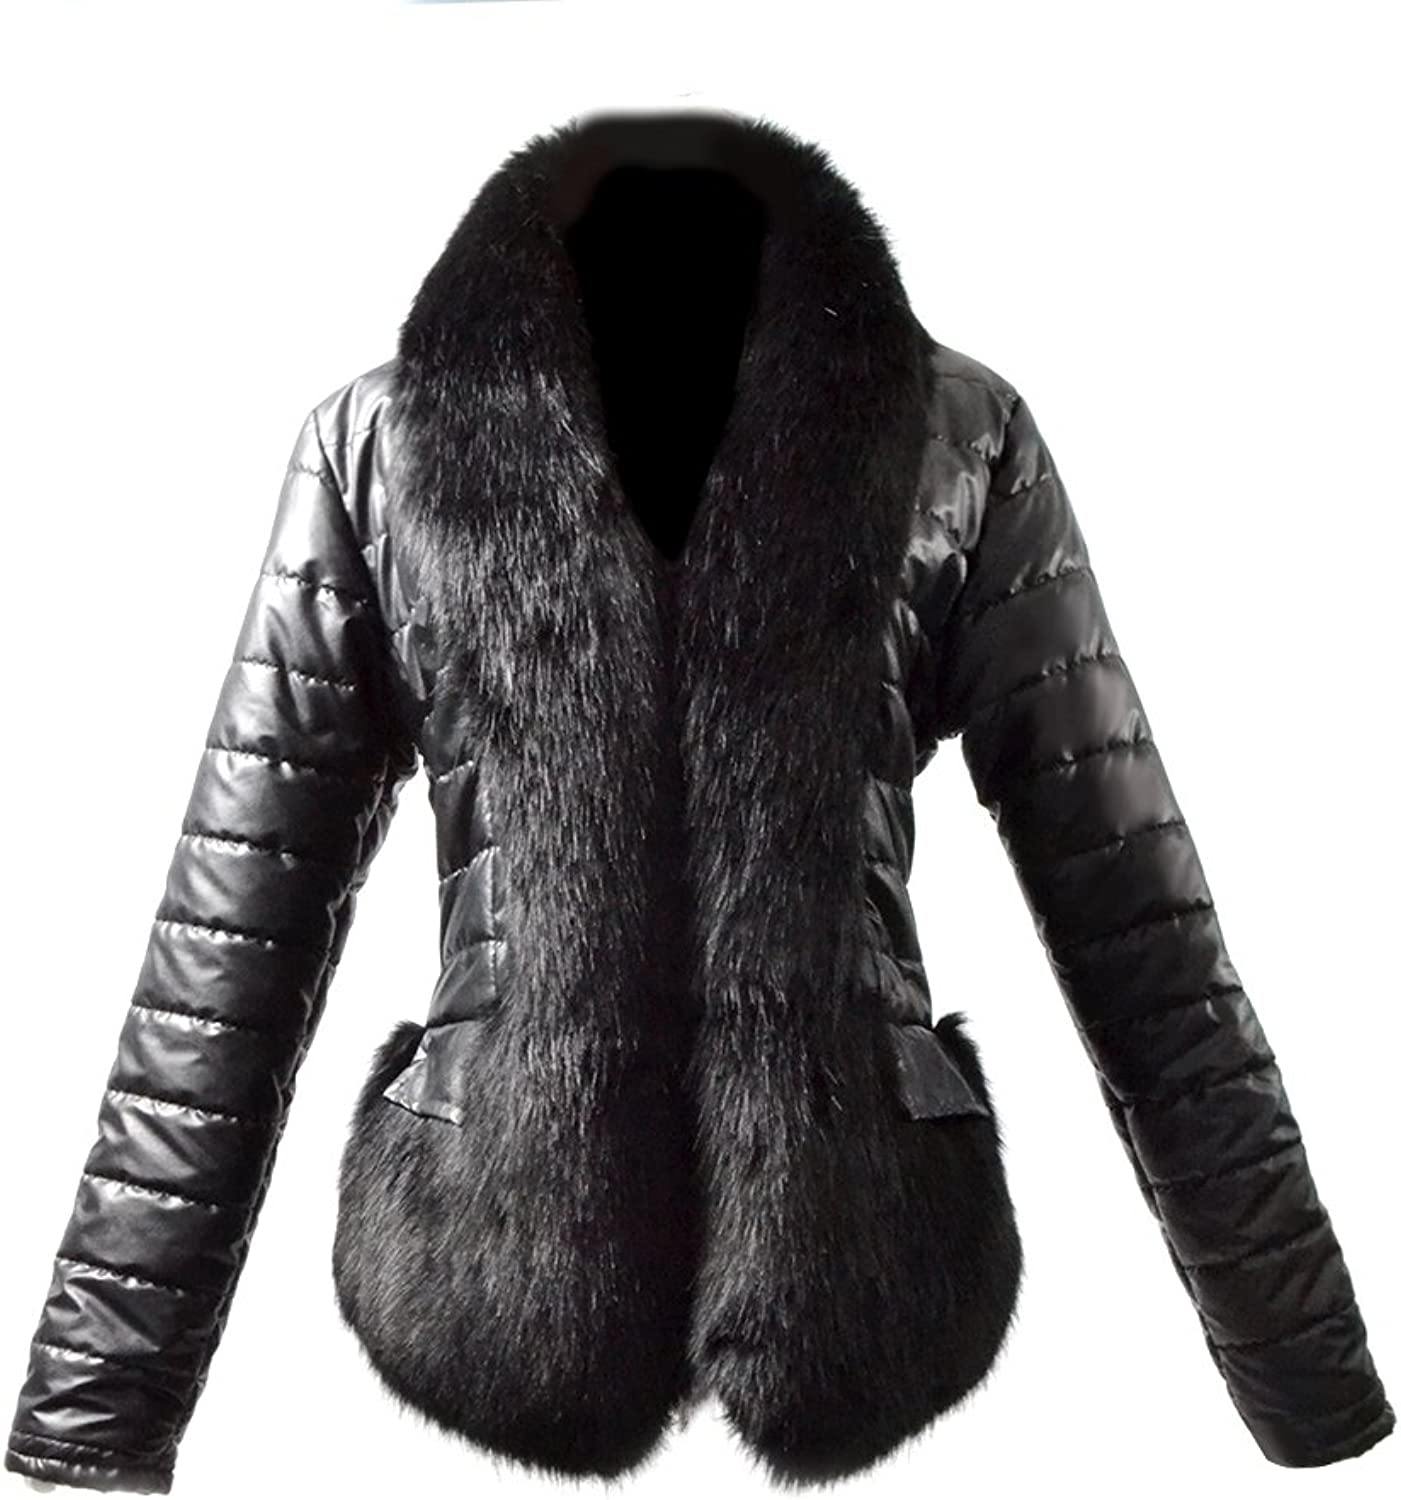 Fhillinuo Faux Leather with Thickness Fox Fur Collar